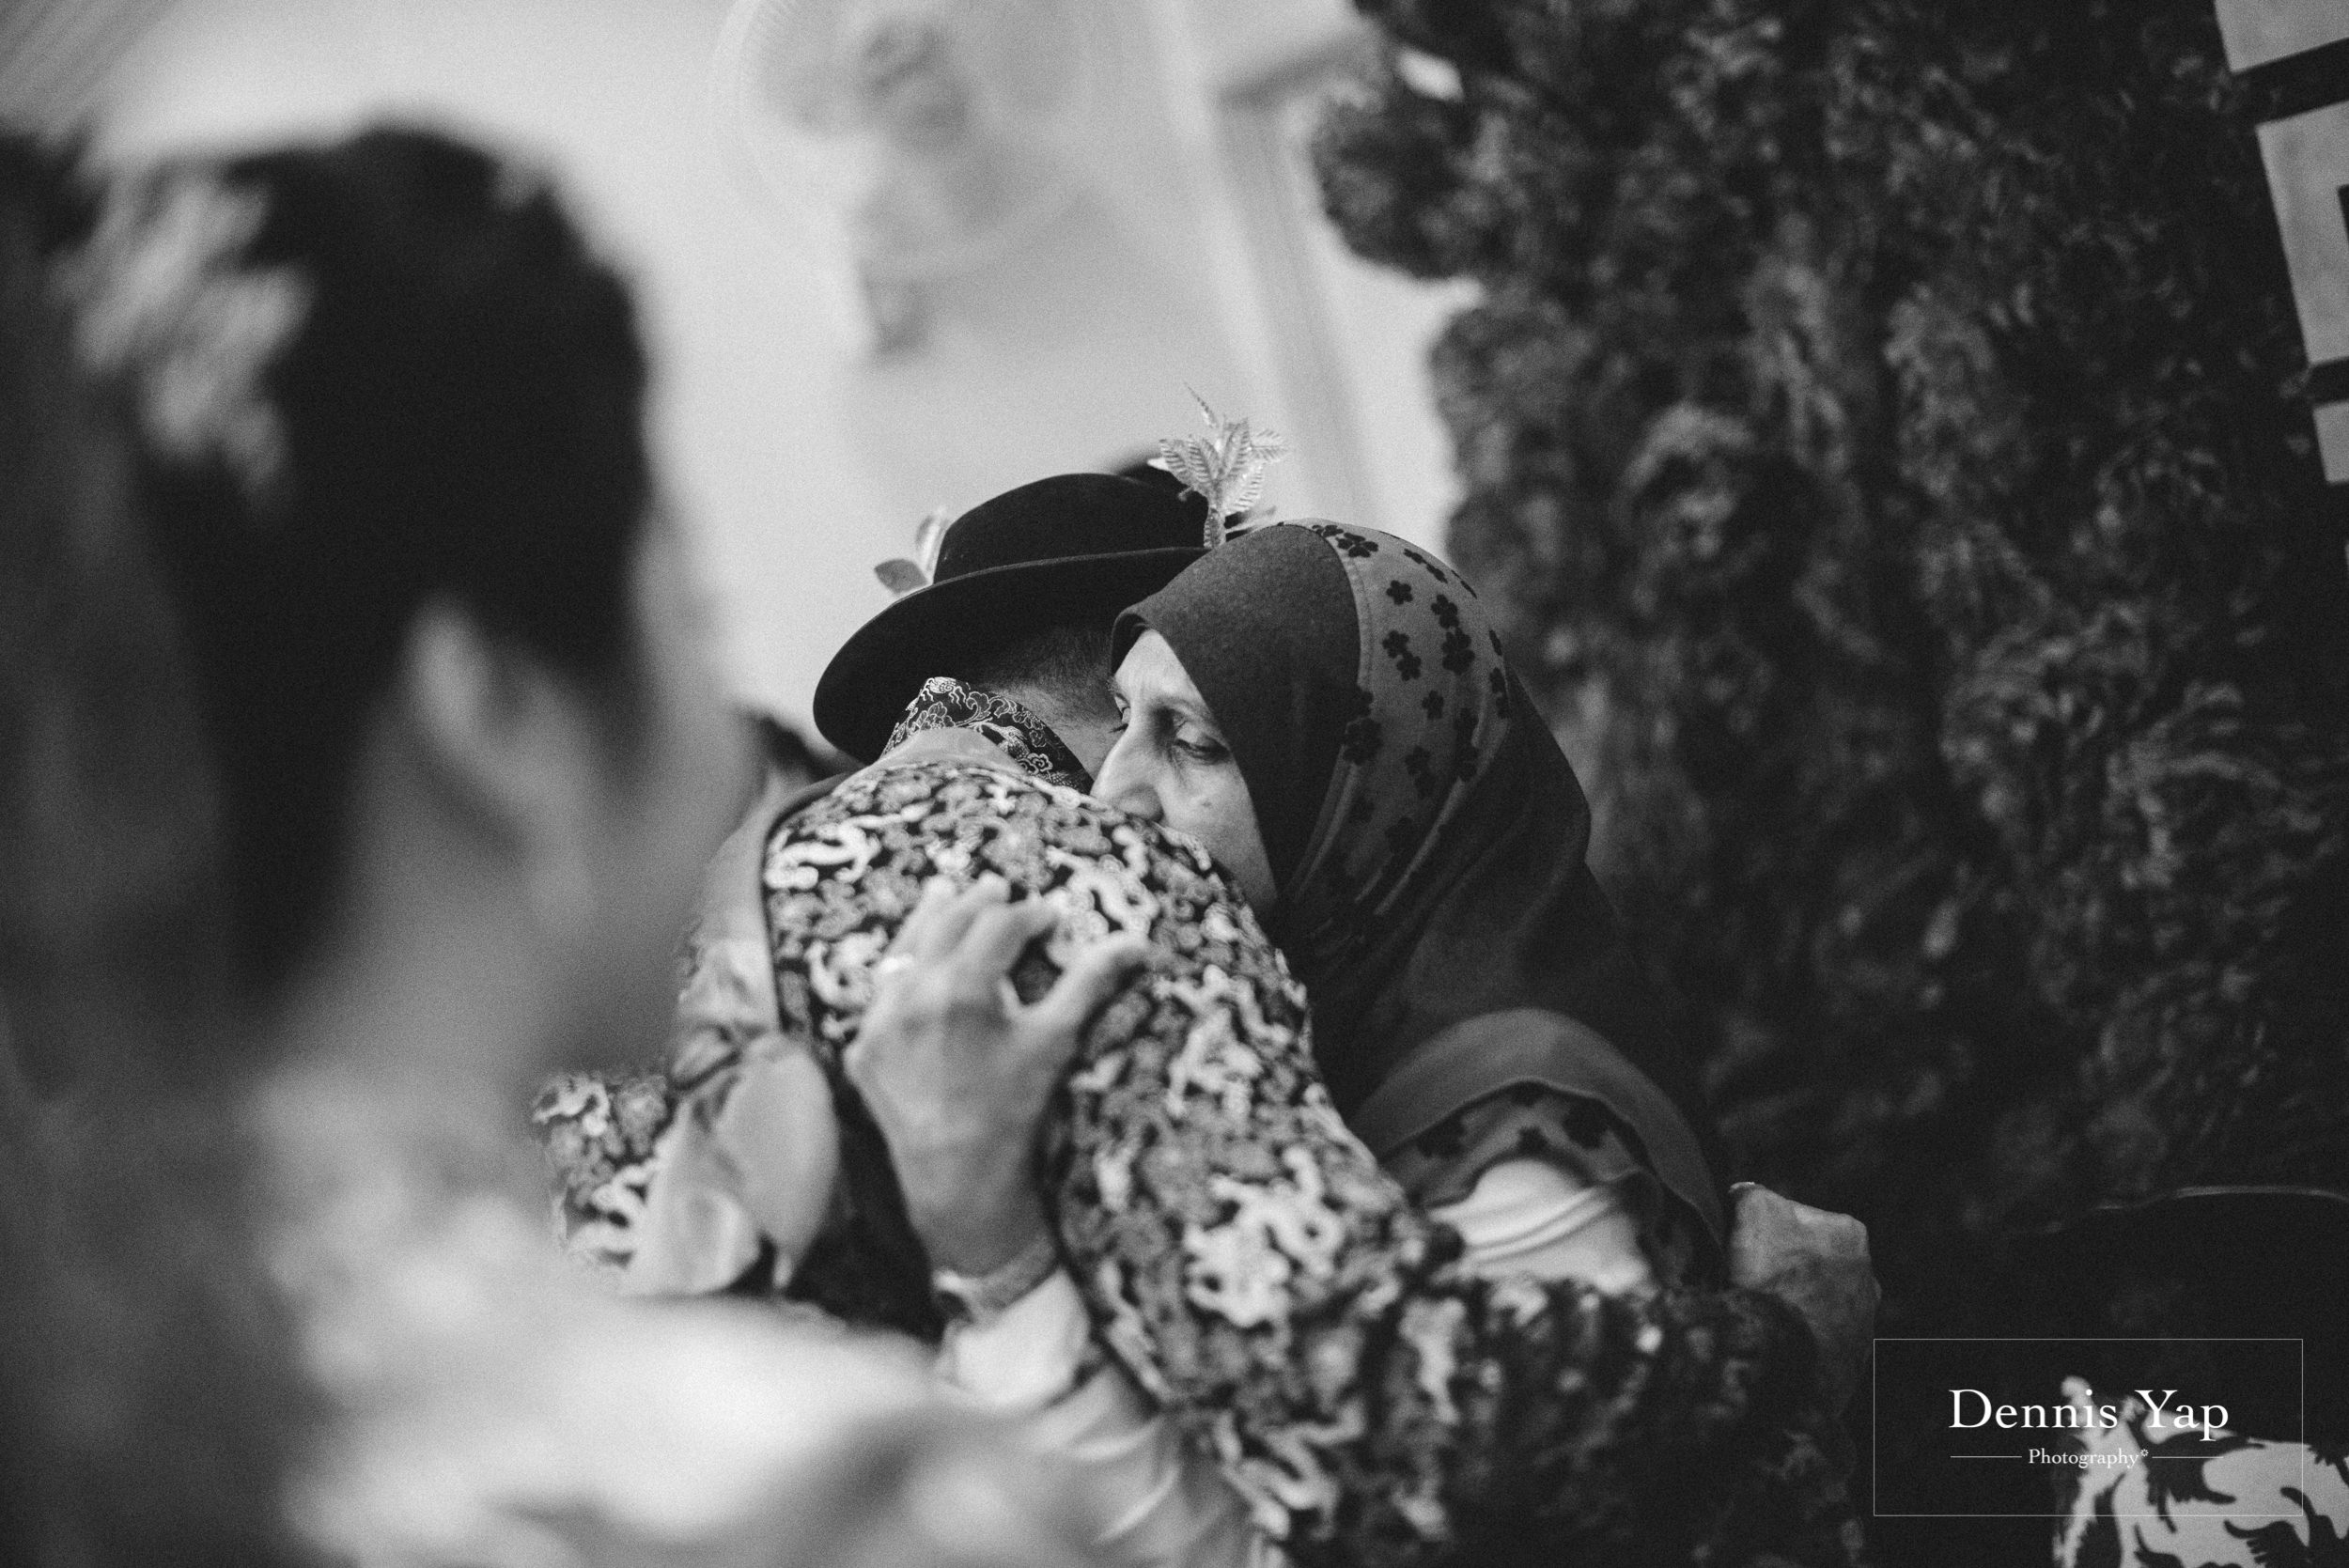 azmi zahraa wedding day gate crash traditional chinese and malay wedding dennis yap malaysia photographer-22.jpg